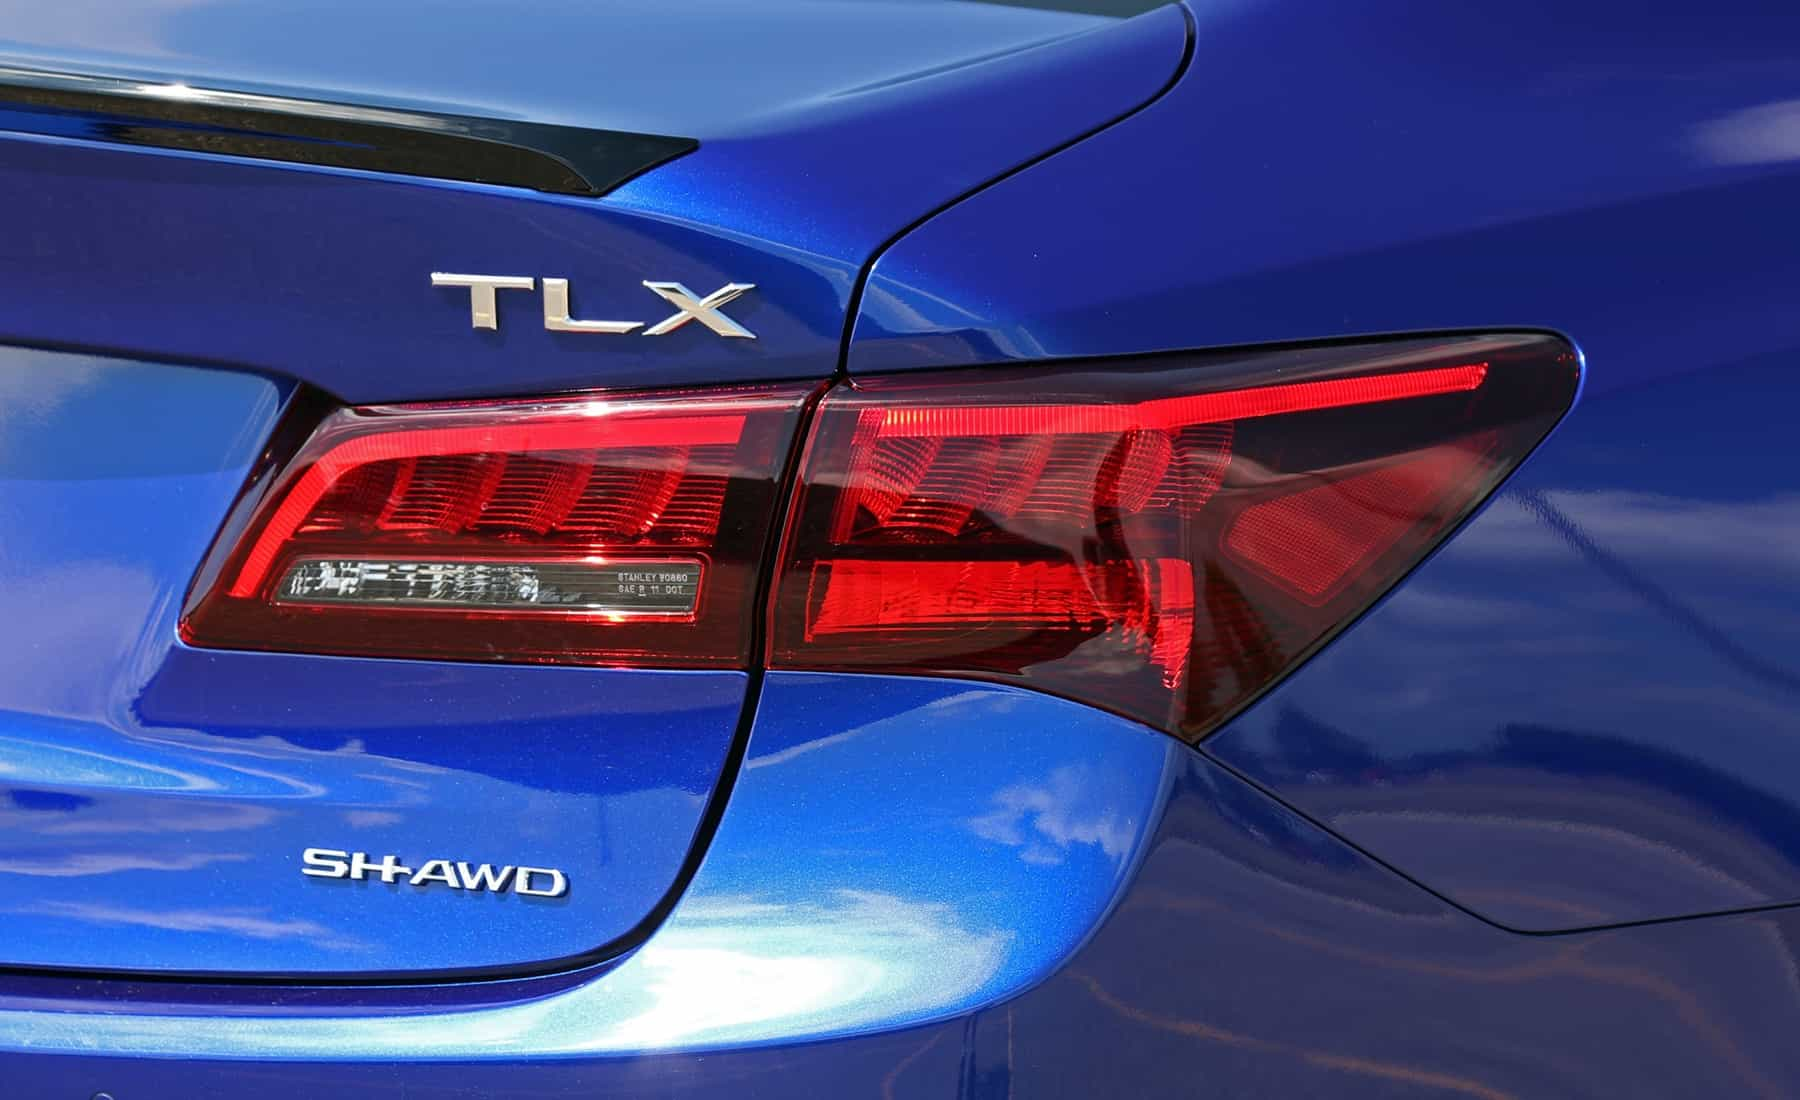 2018 Acura TLX Exterior View Taillight And Emblem (Photo 36 of 46)